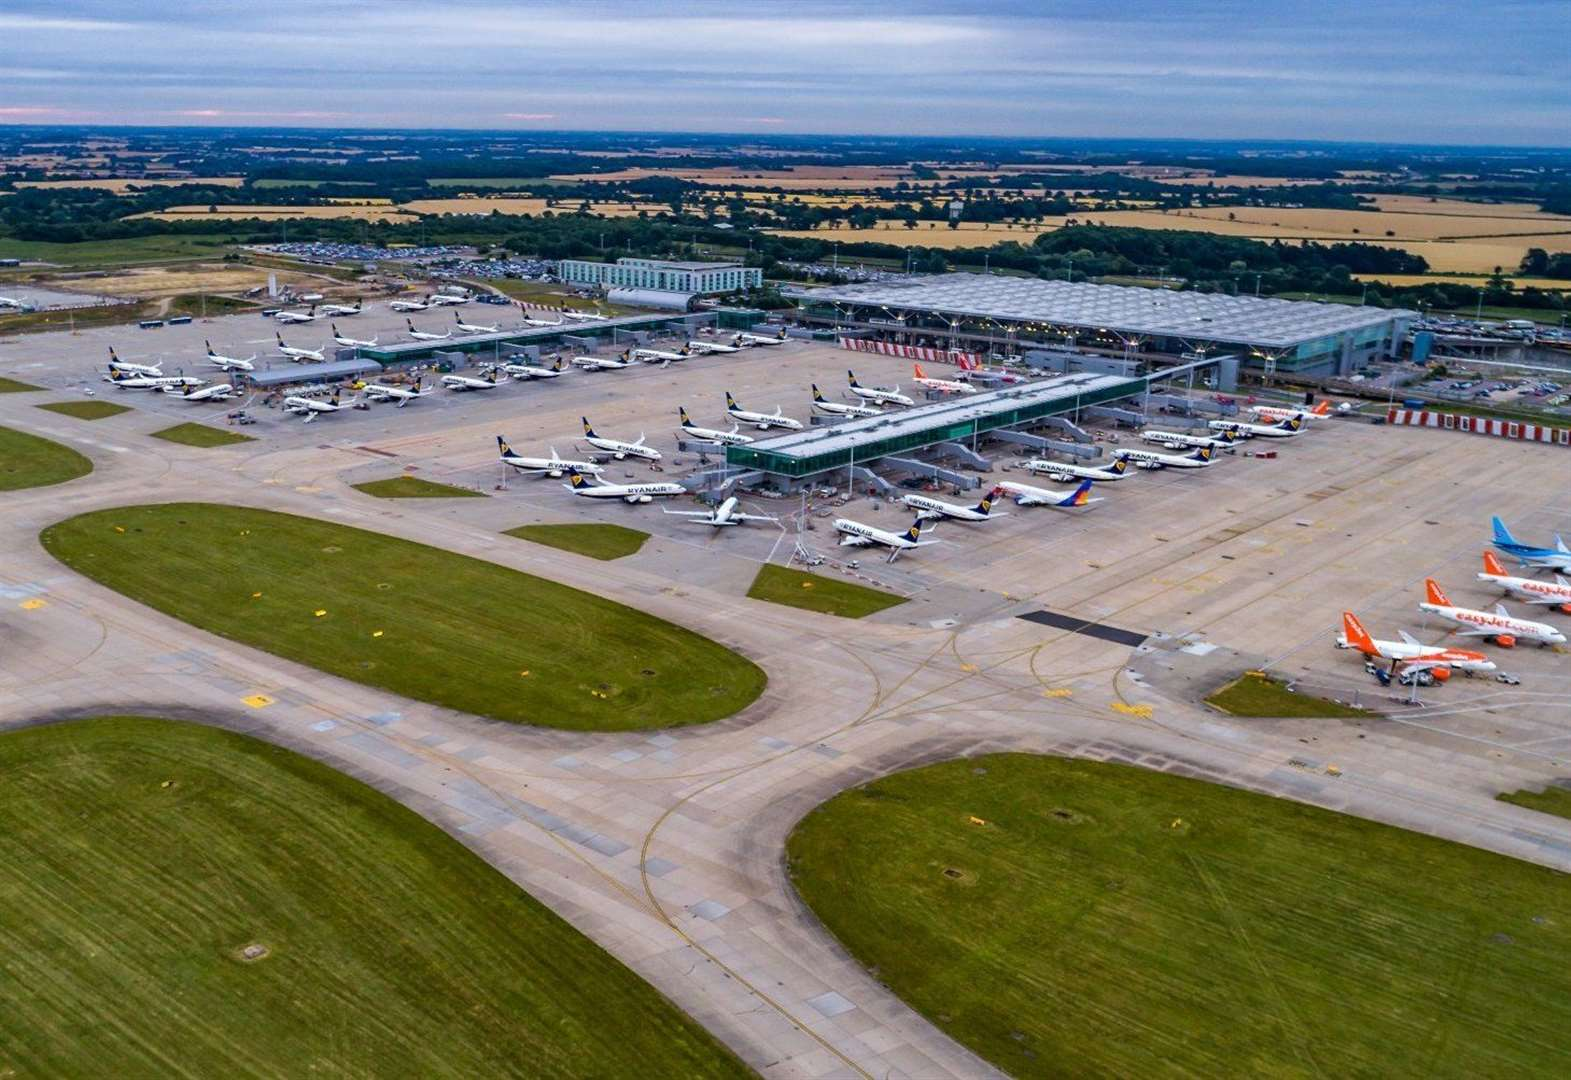 Uttlesford council votes to review planning permission for Stansted Airport growth